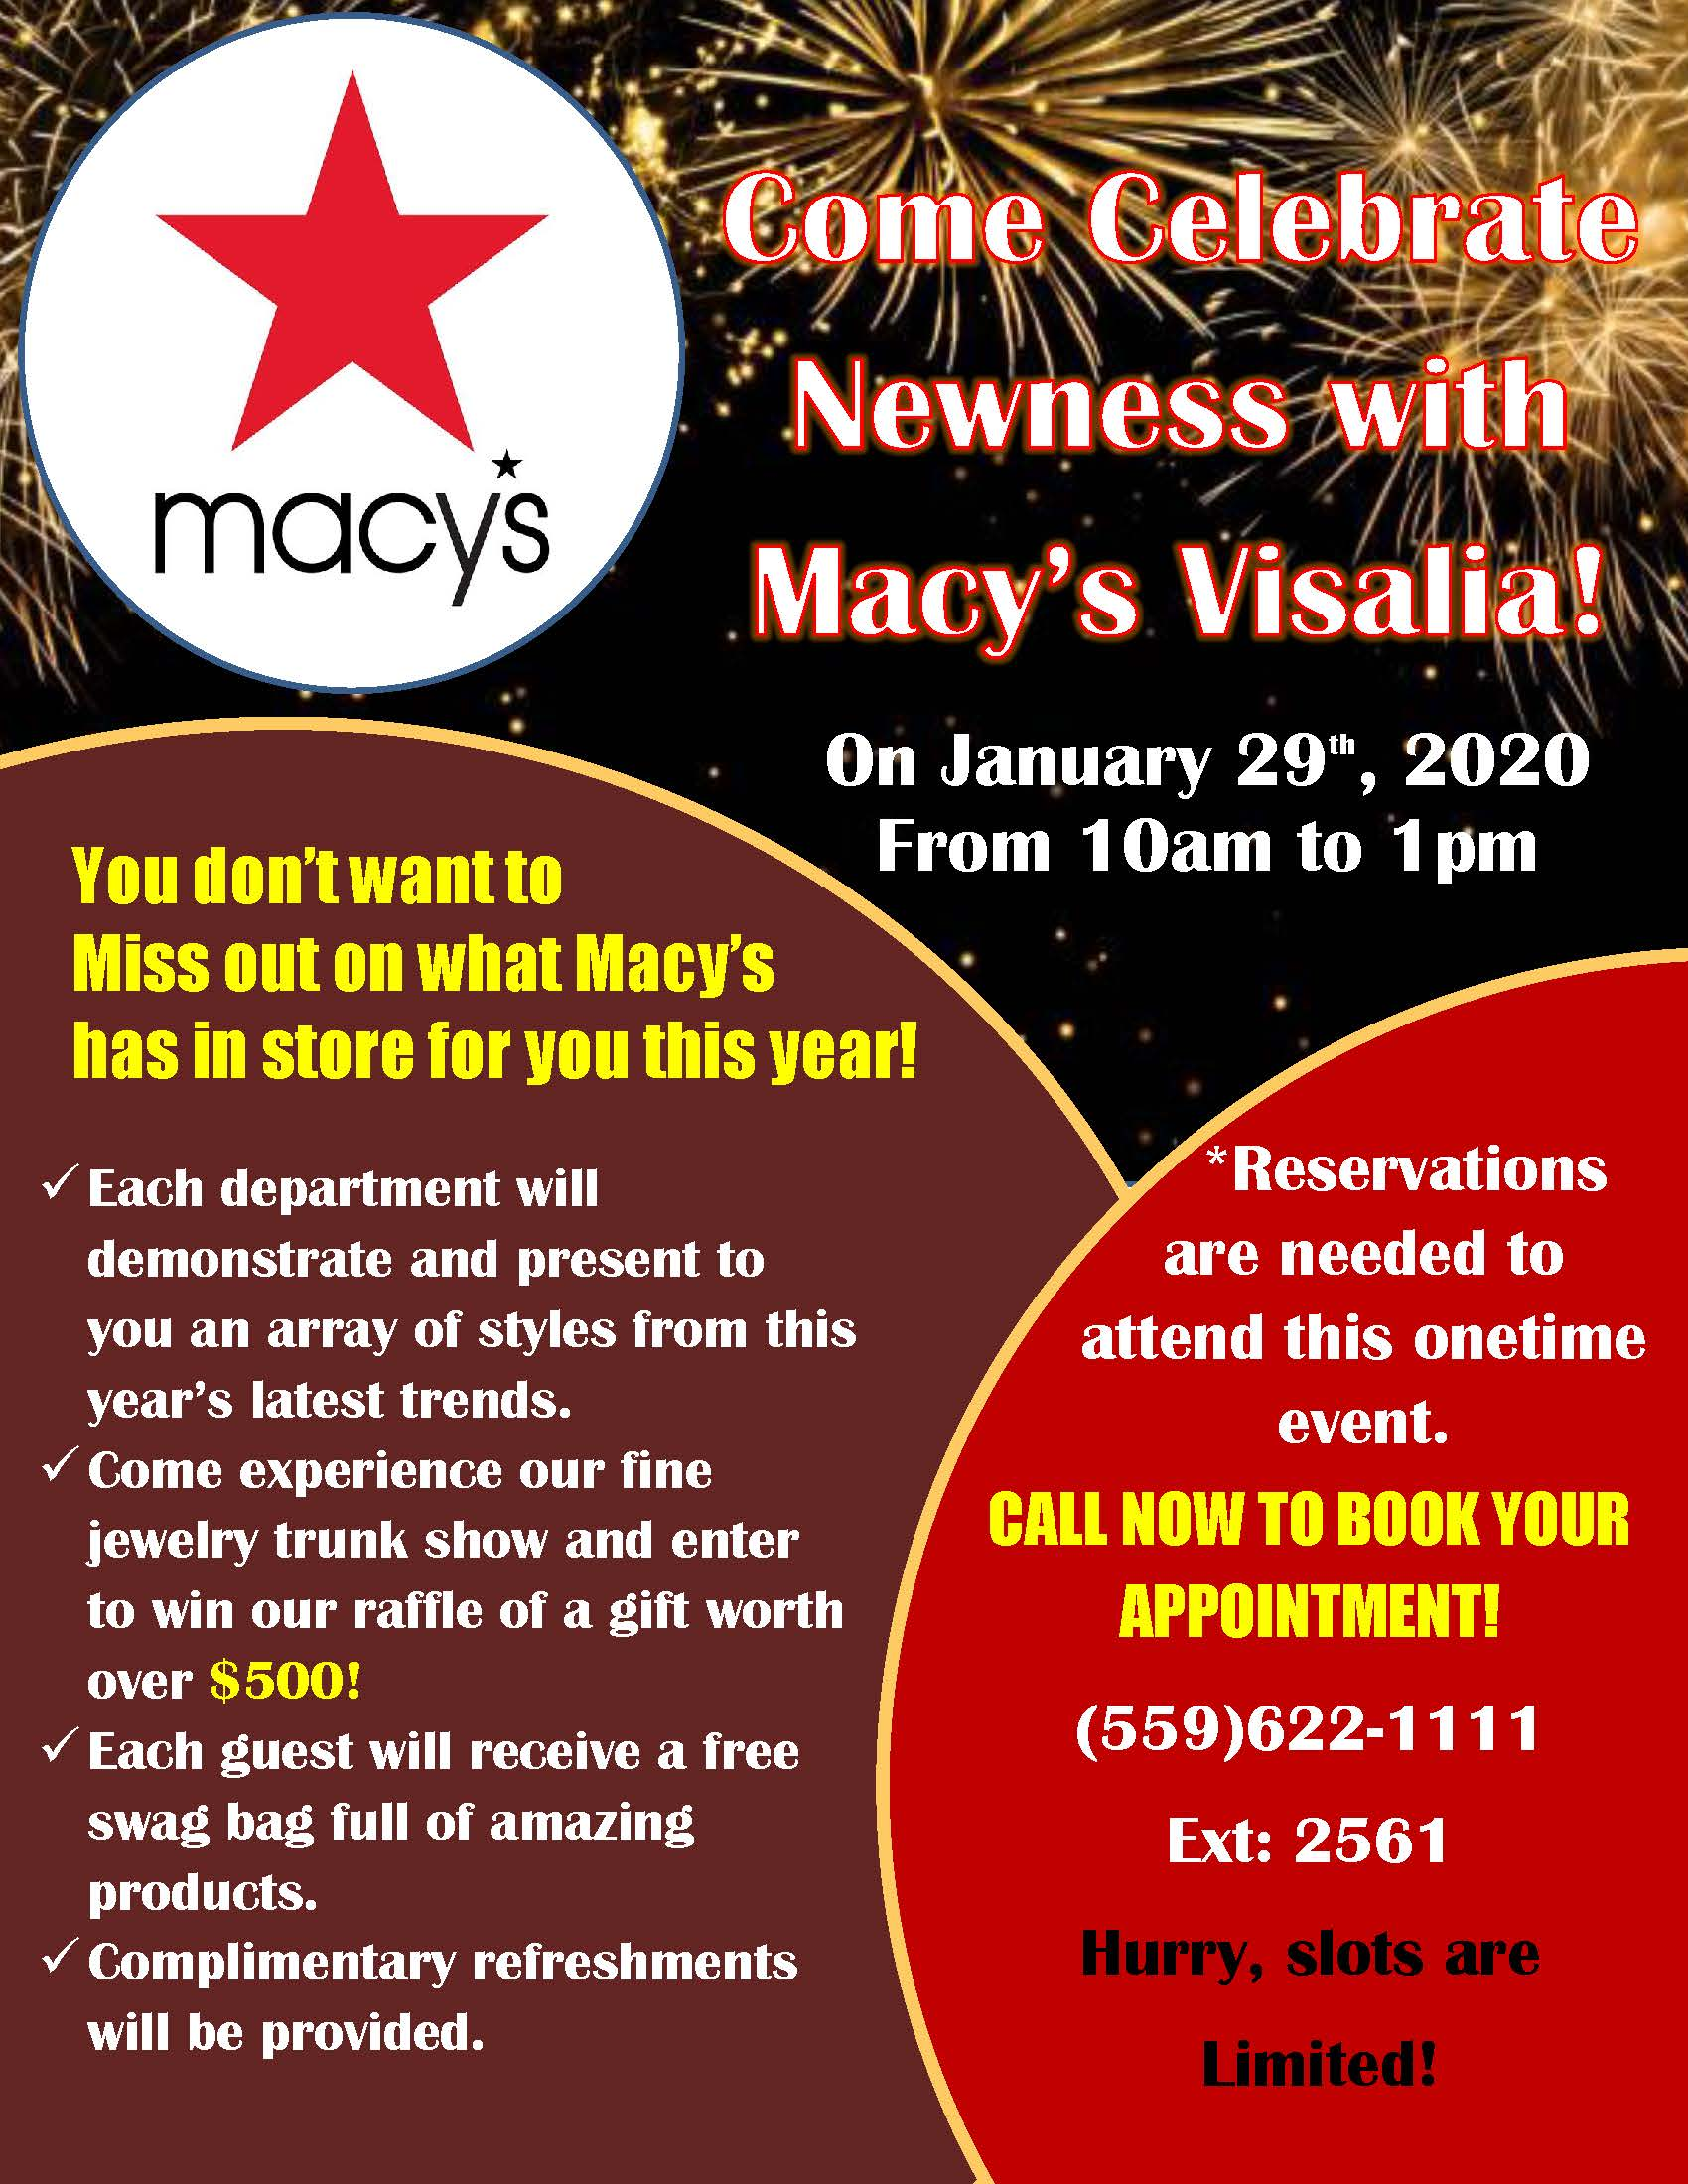 MacysCelebrate Newness Event Each Department will demonstrate and present to you an array of styles from this year's latest trends.  *Reservations are needed to add this event. Call now to book your appointment. (559)-622-1111 ext.: 2561